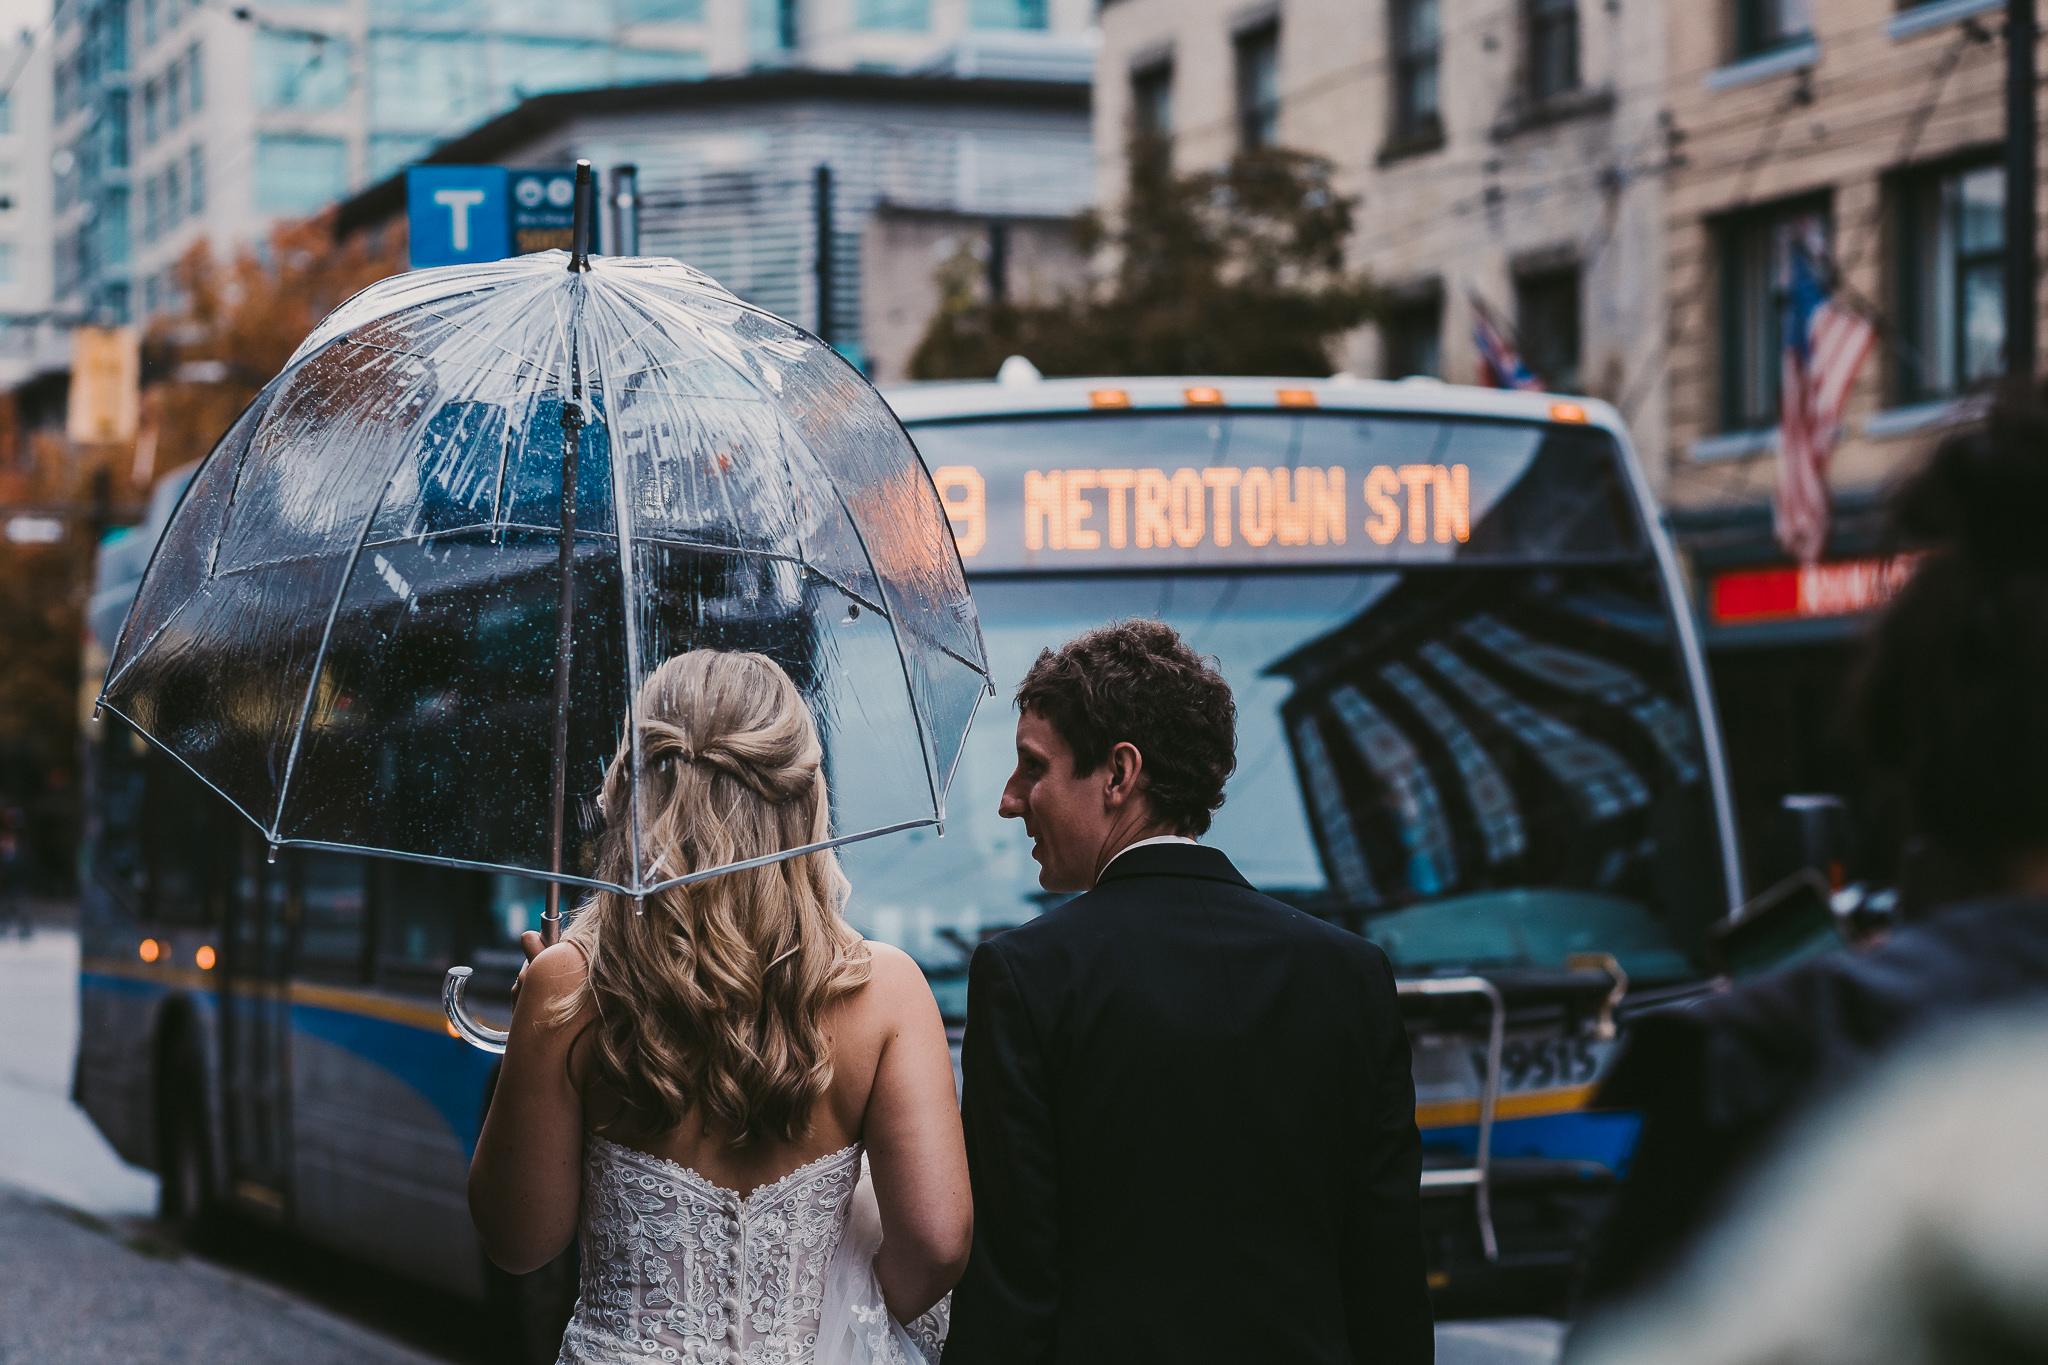 Bride and Groom walking down busy city street in Vancouver, BC in the rain on their way to their wedding. Bride holding umbrella as city bus is driving by.